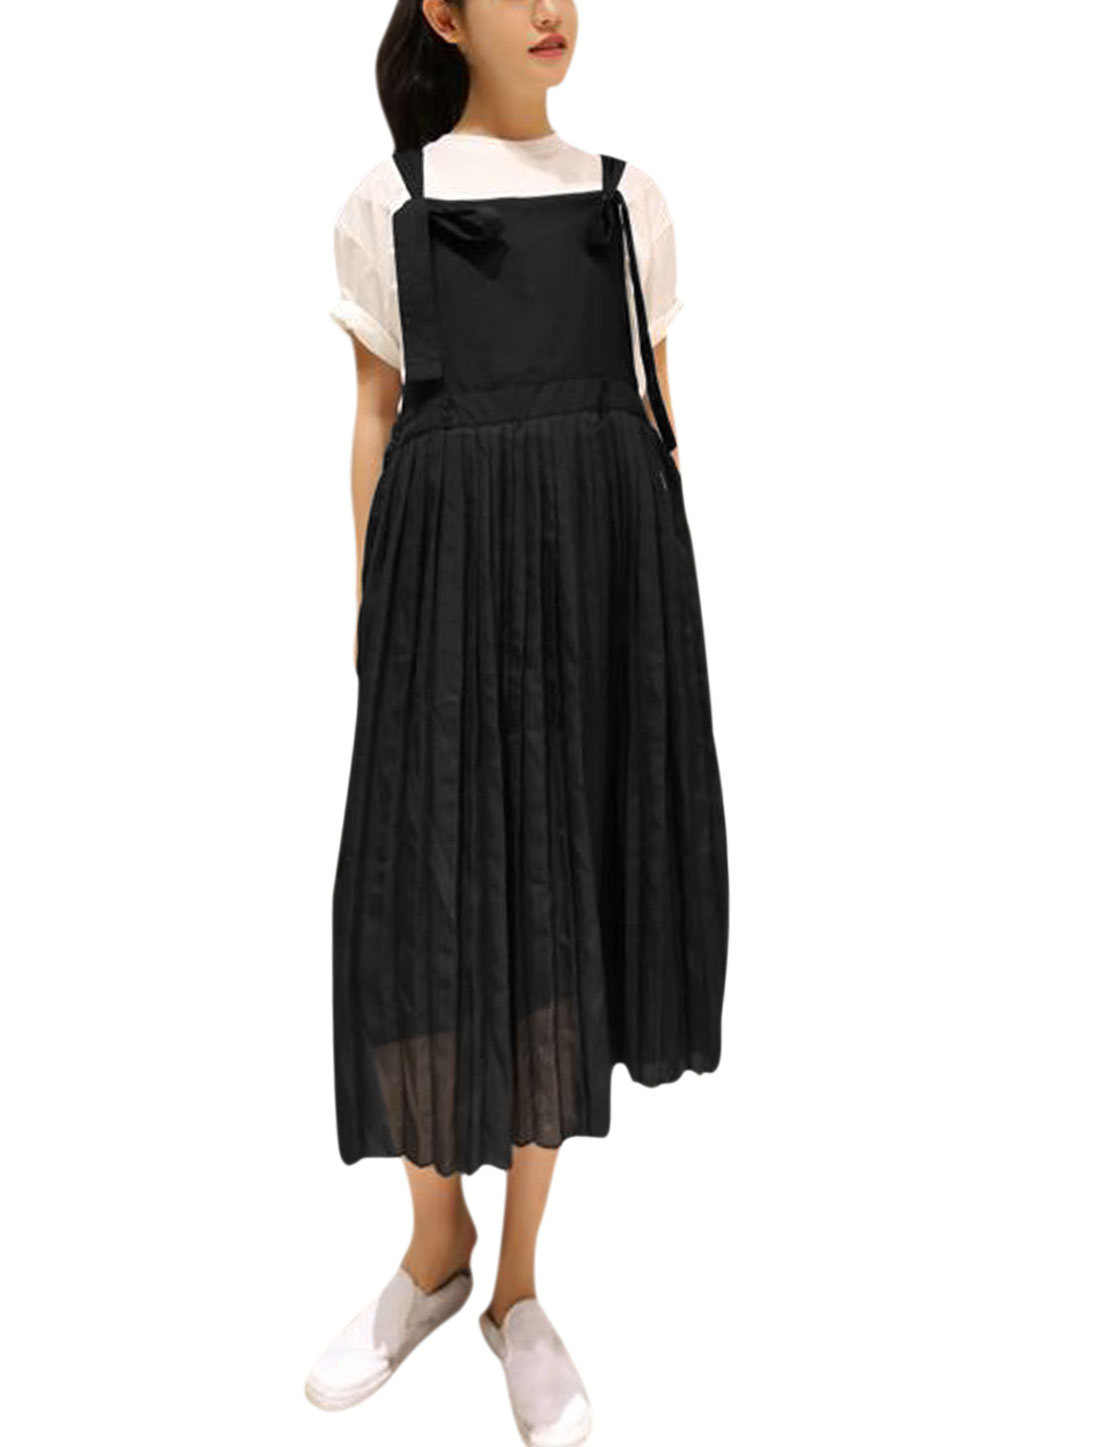 Women Adjustable Straps Pleated Elastic Waist Chiffon Suspender Dress Black XS